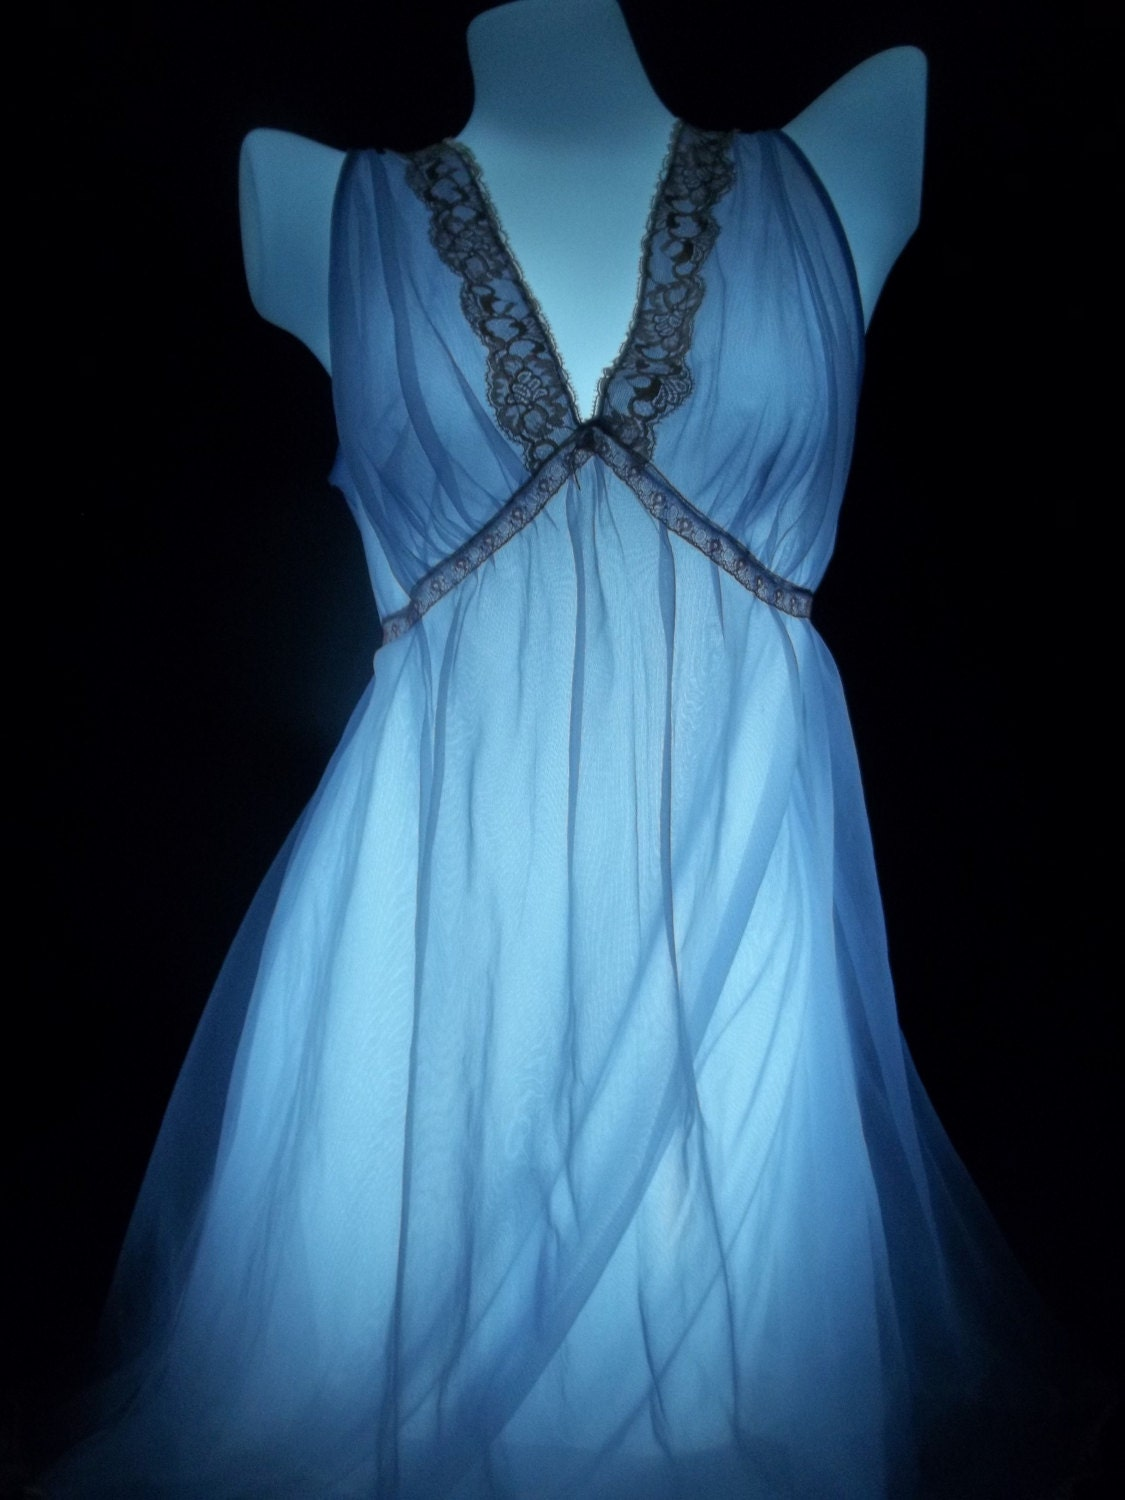 Lisette Double Nylon Chiffon Nightgown Sheer Vintage Gown Size